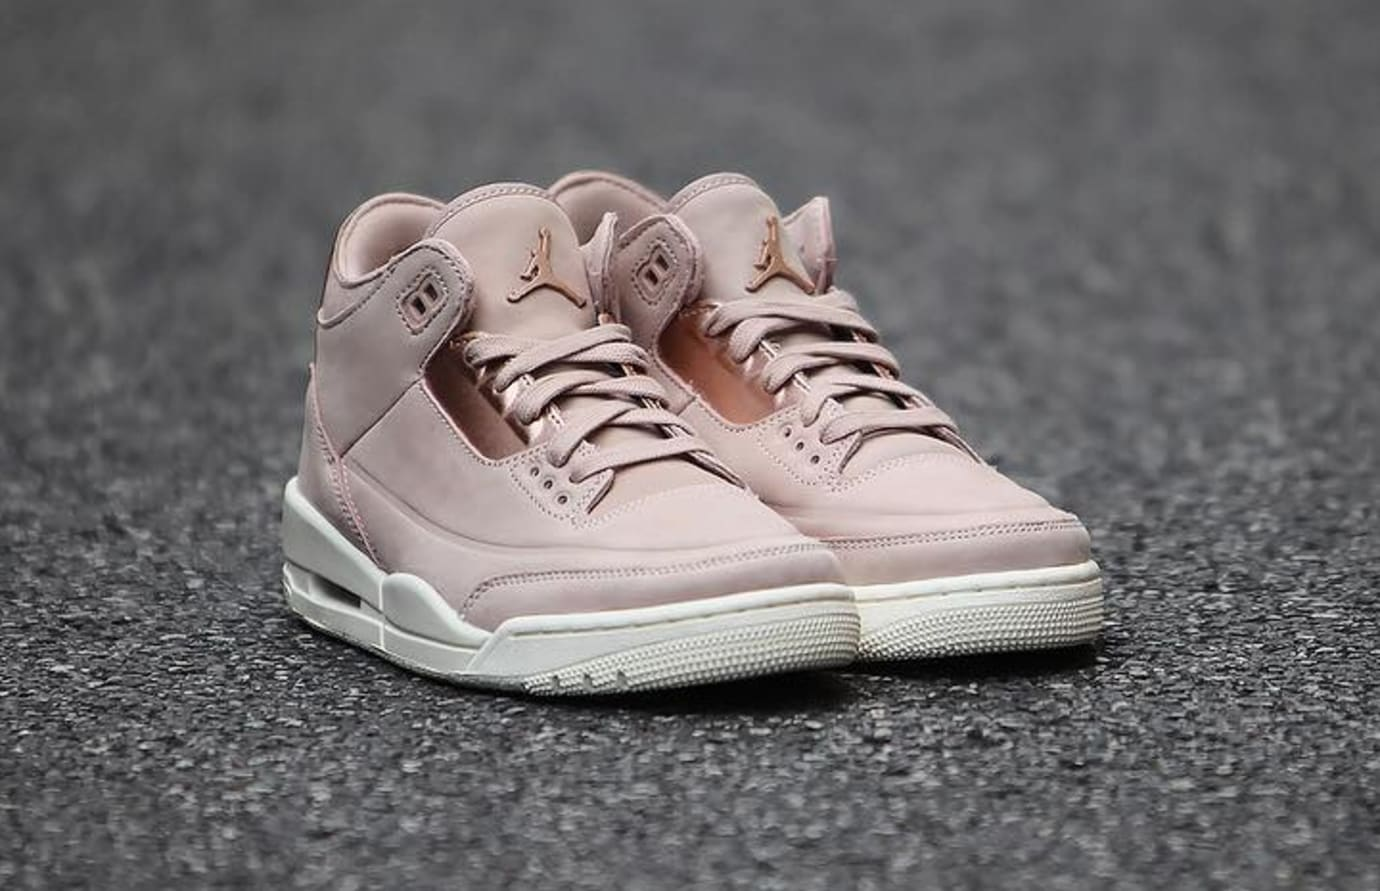 5fbfba64fb9 Image via Nike Air Jordan 3 III Women's Particle Beige Release Date  AH7859-205 Right Toe